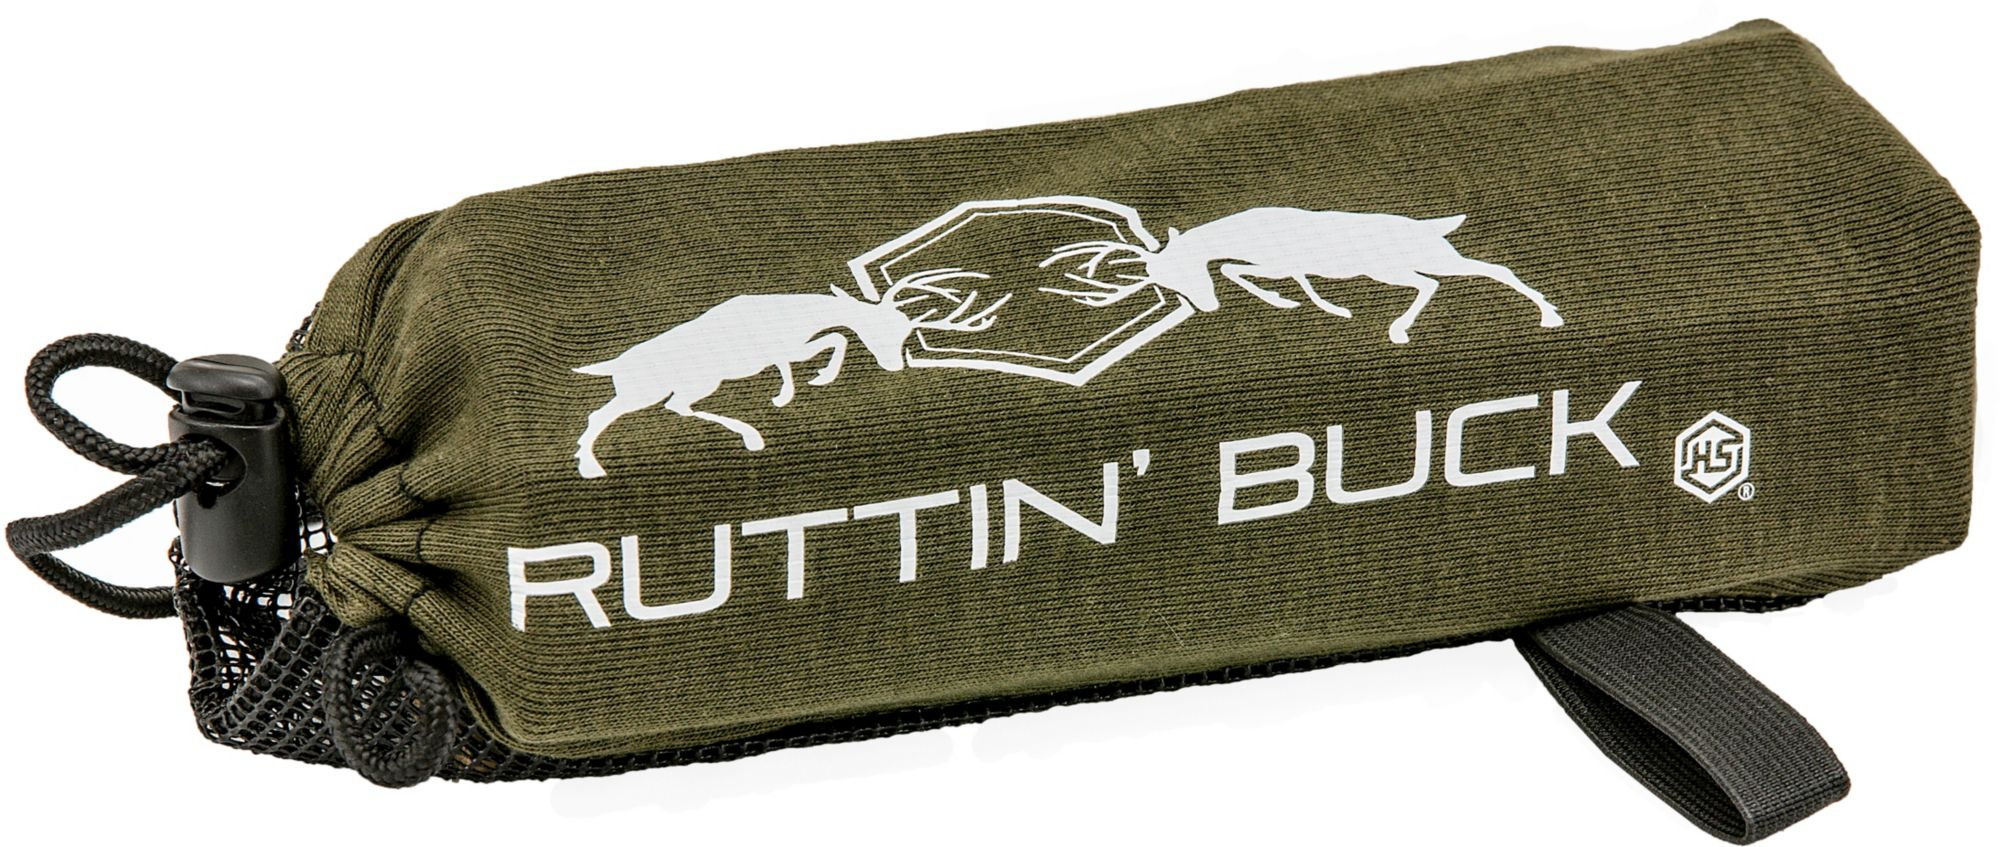 Hunters Specialties Ruttin' Buck Rattling Bag Deer Call, Adult Unisex